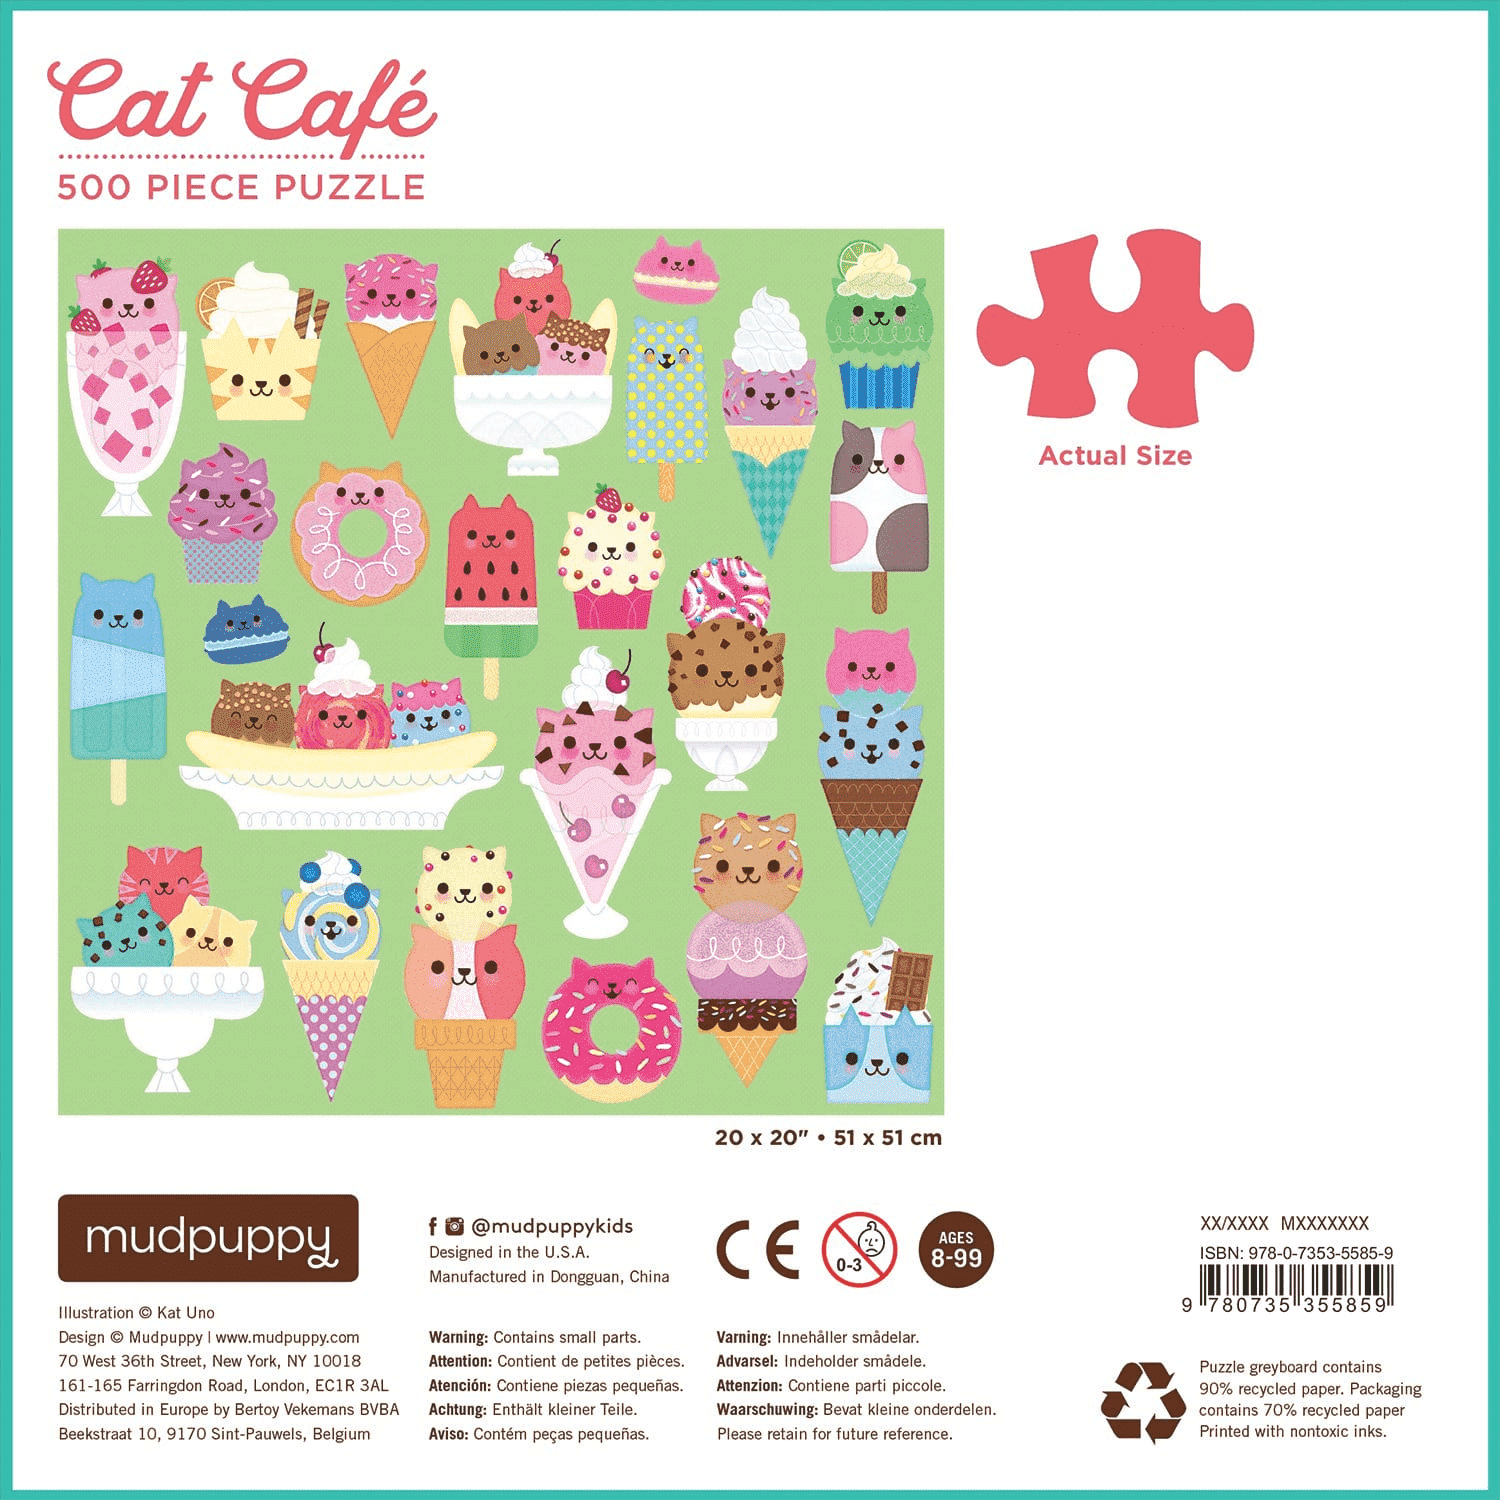 Cat Cafe 500 Piece